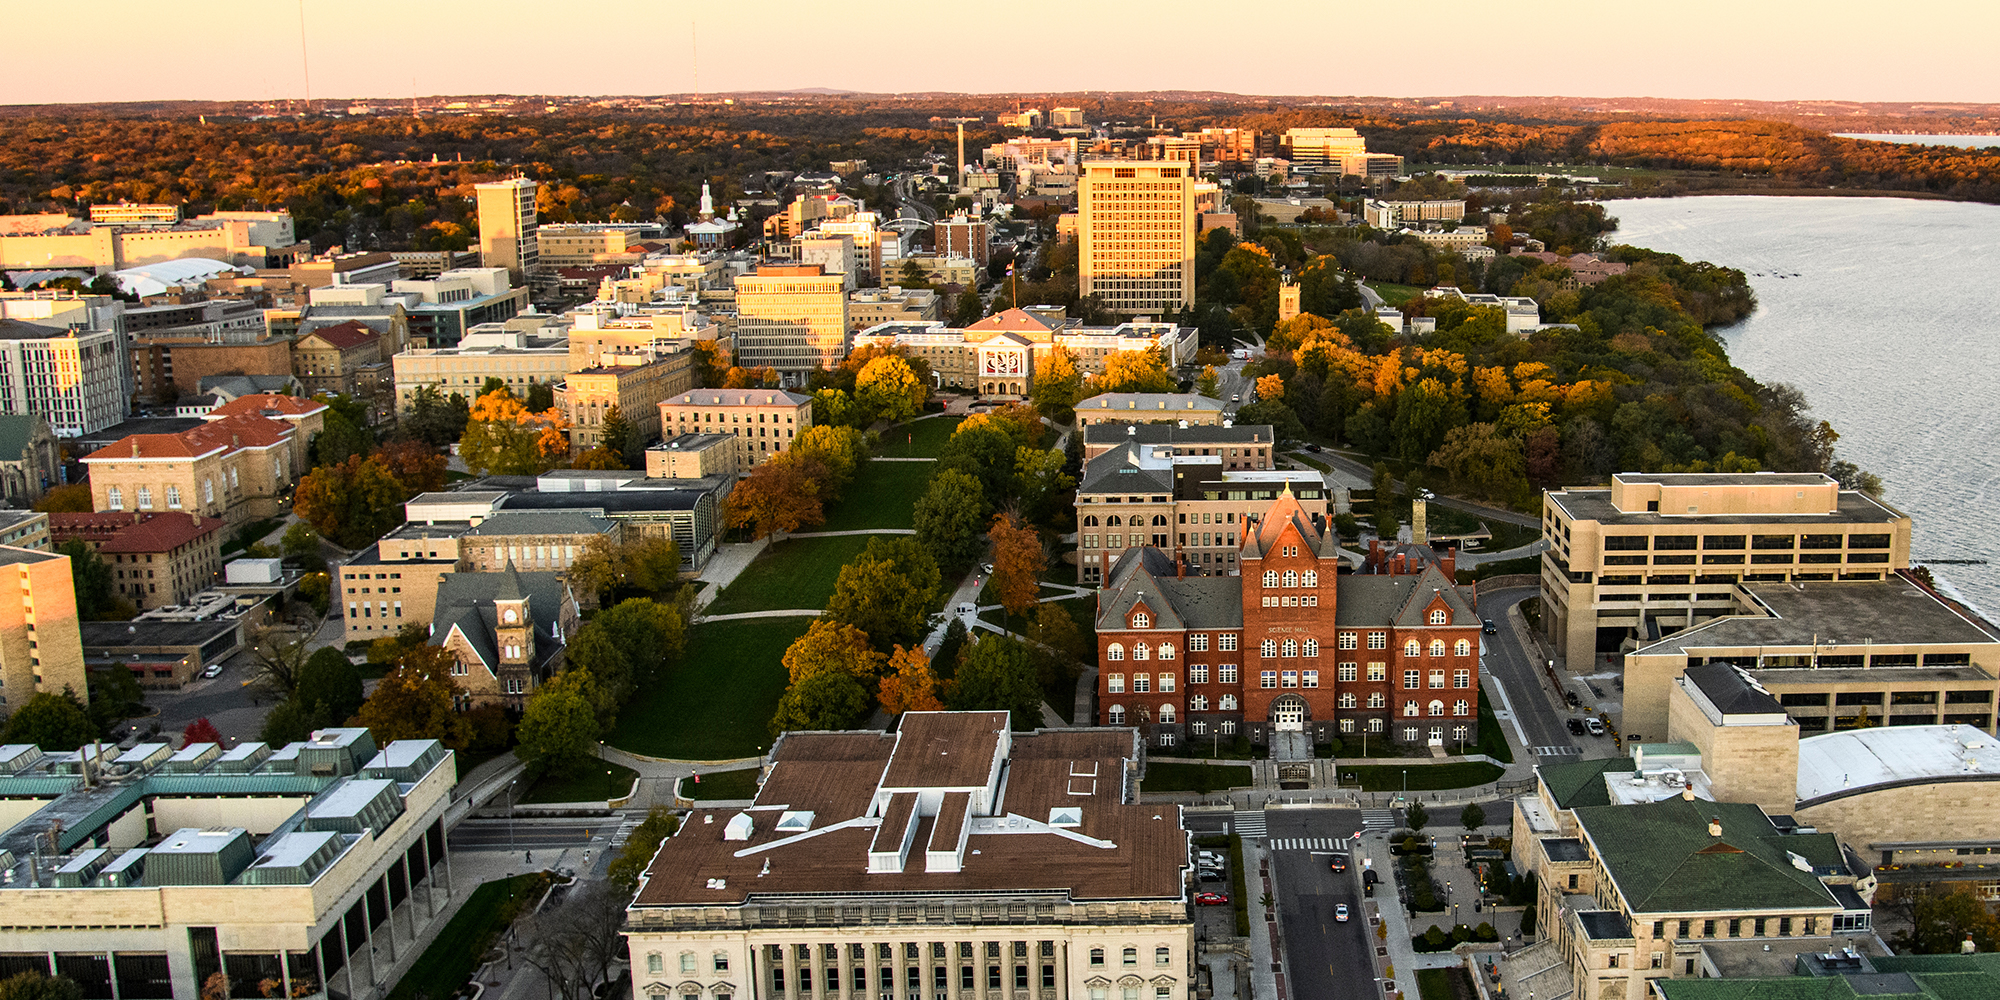 Aerial shot of the UW campus, including Bascom Hill and the Law School